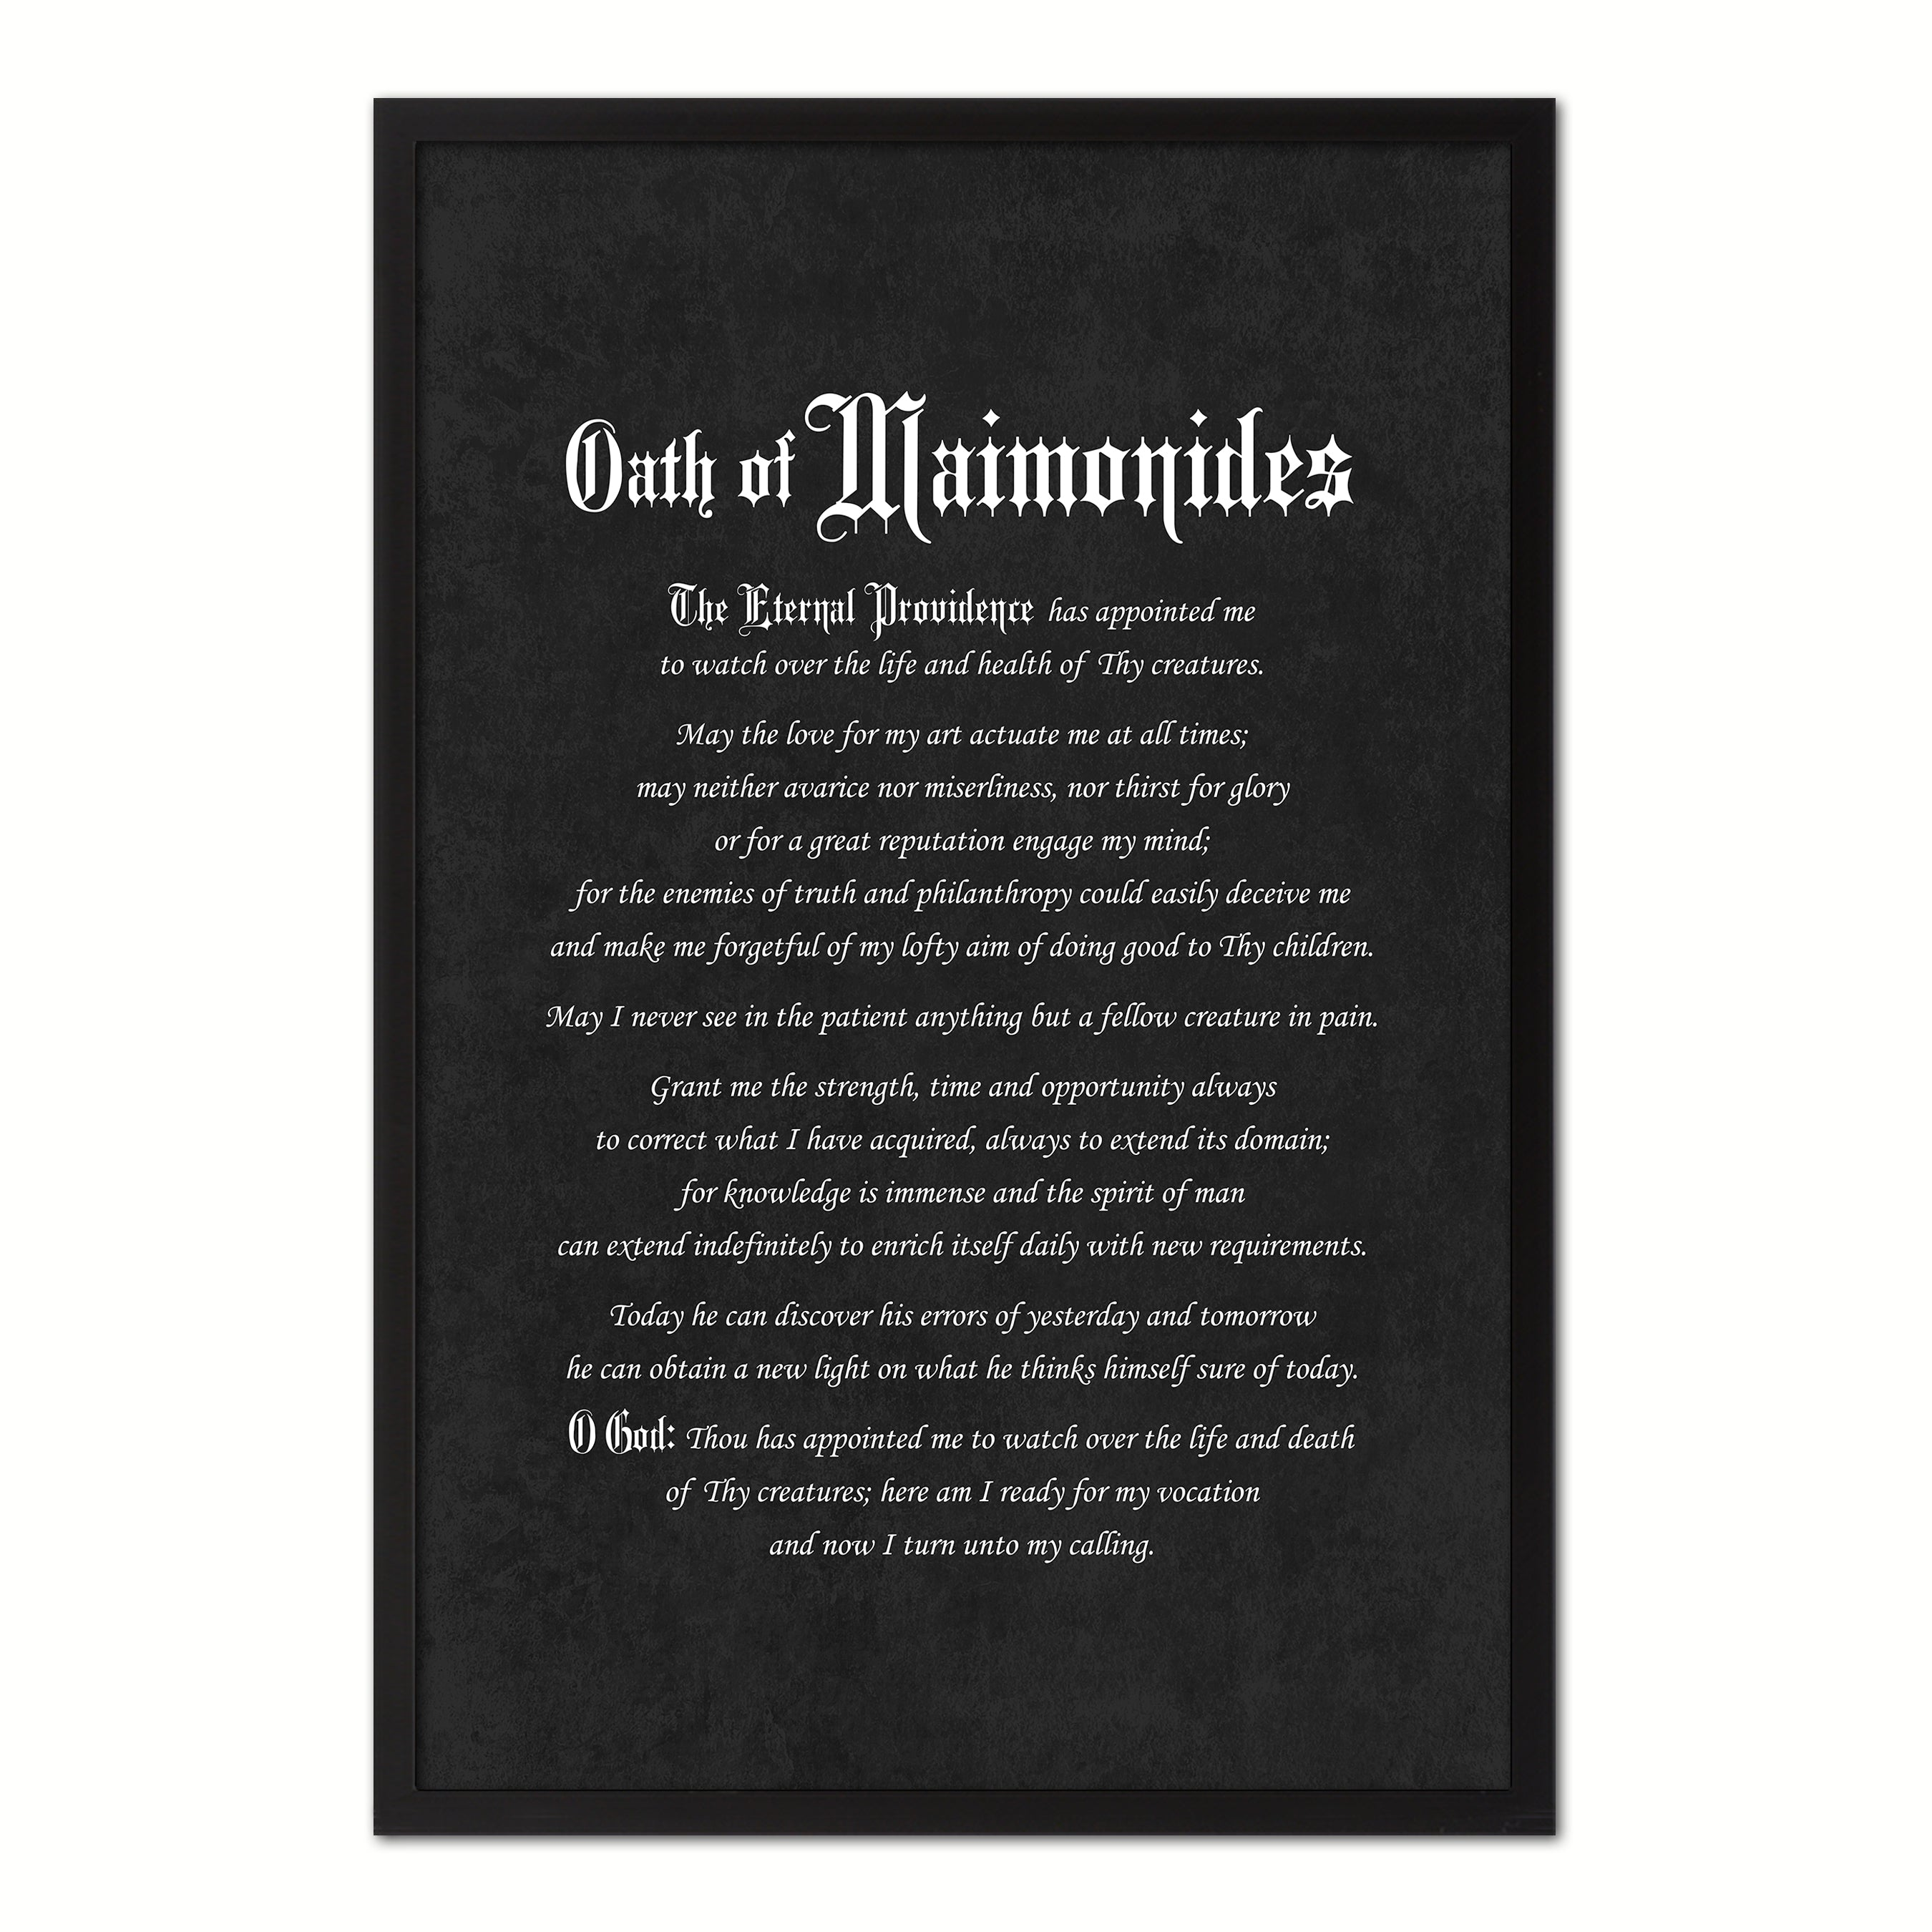 Maimonides Medical Oath, Hippocratic Oath, Medical Gifts, Gift for Doctor, Medical Decor, Medical Student, Office Decor, doctor office, Black Frame